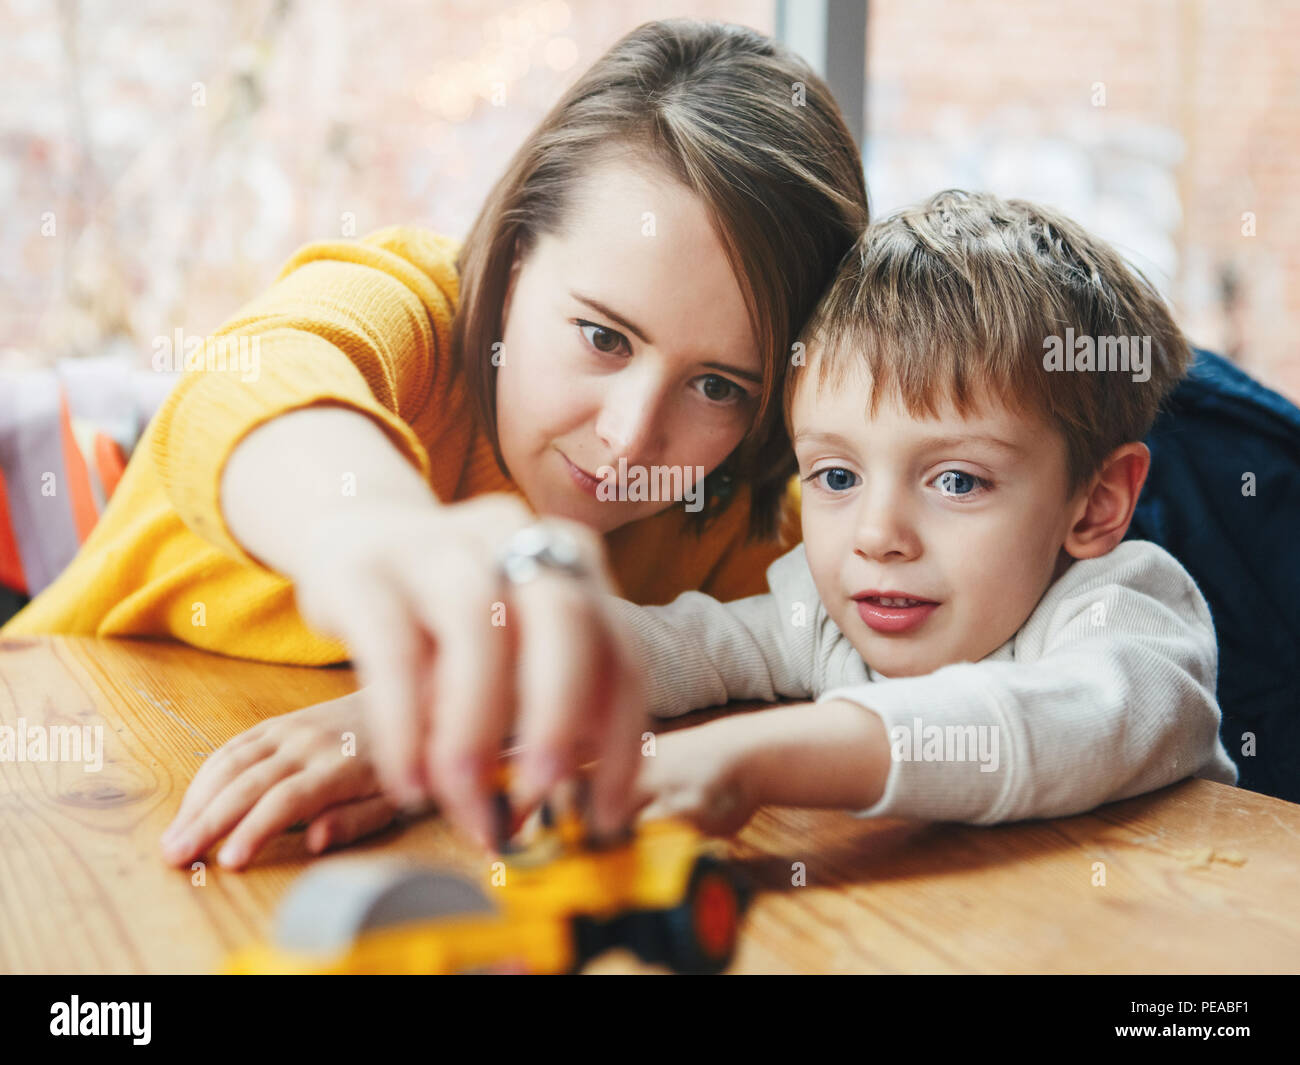 Portrait of white Caucasian happy family, mother and son, sitting in restaurant cafe at table, smiling playing with toy car, authentic lifestyle - Stock Image